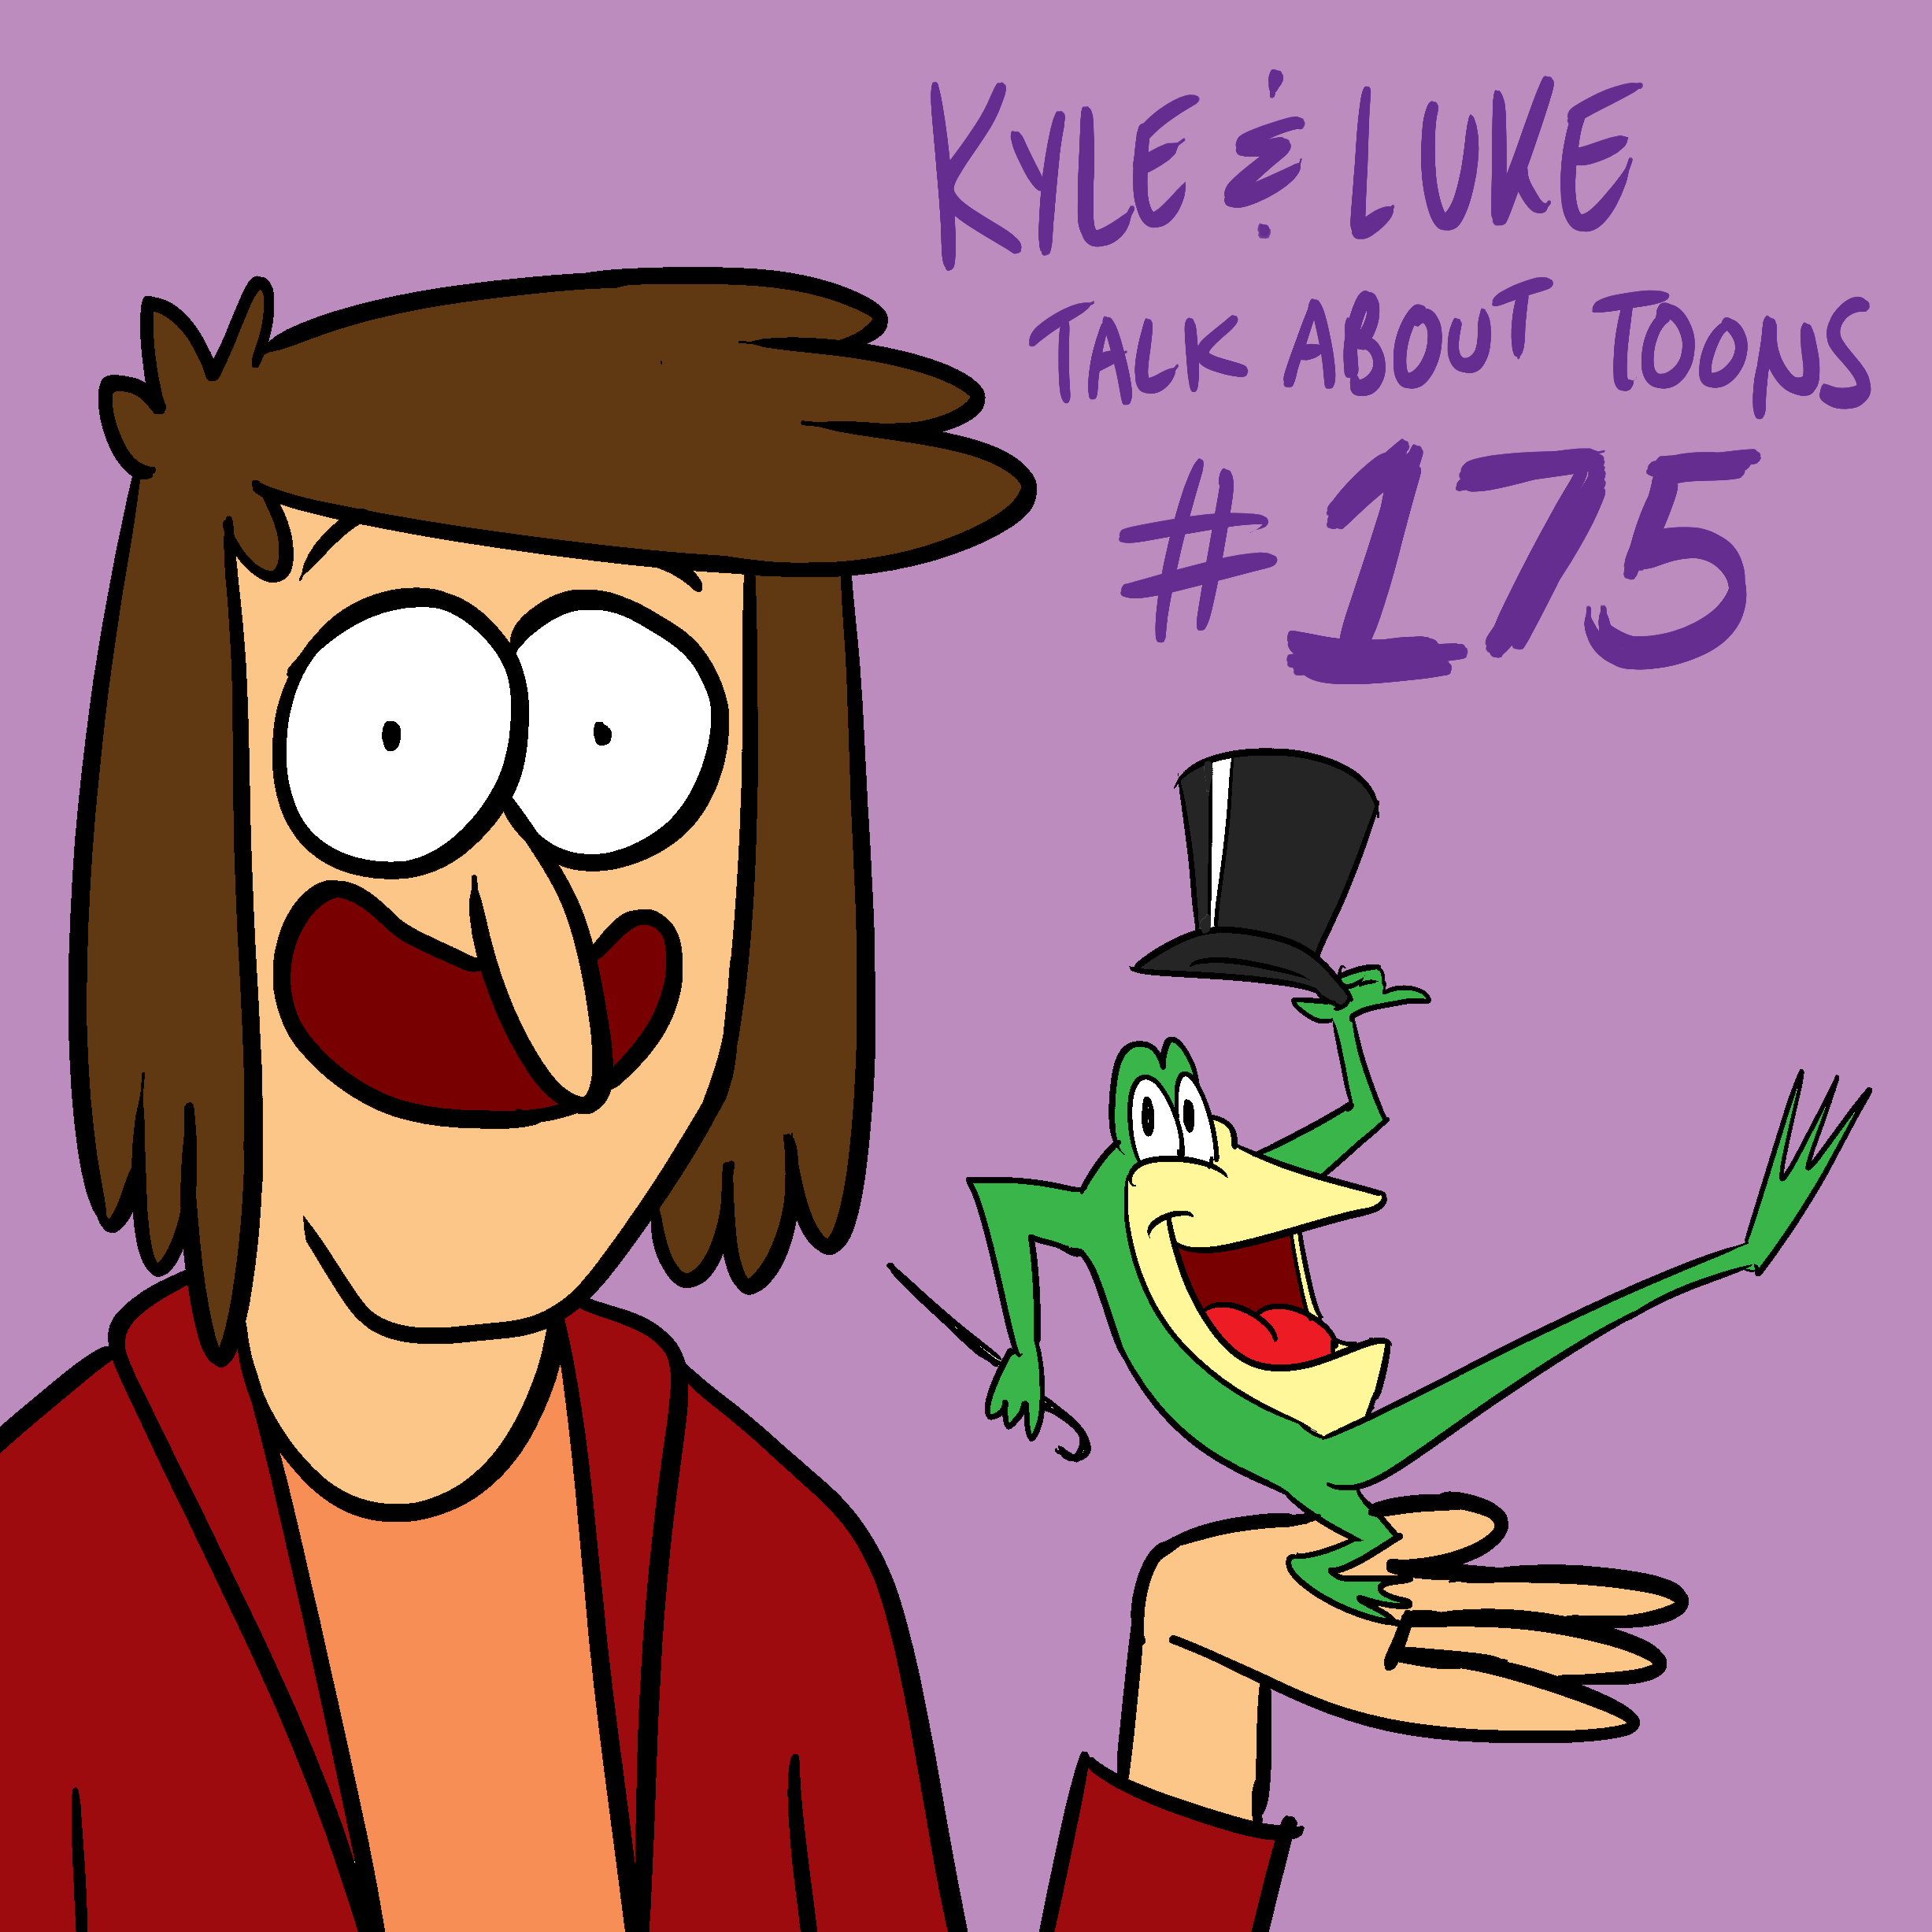 Kyle and Luke Talk About Toons #175: Now I Want to Punch Cheese